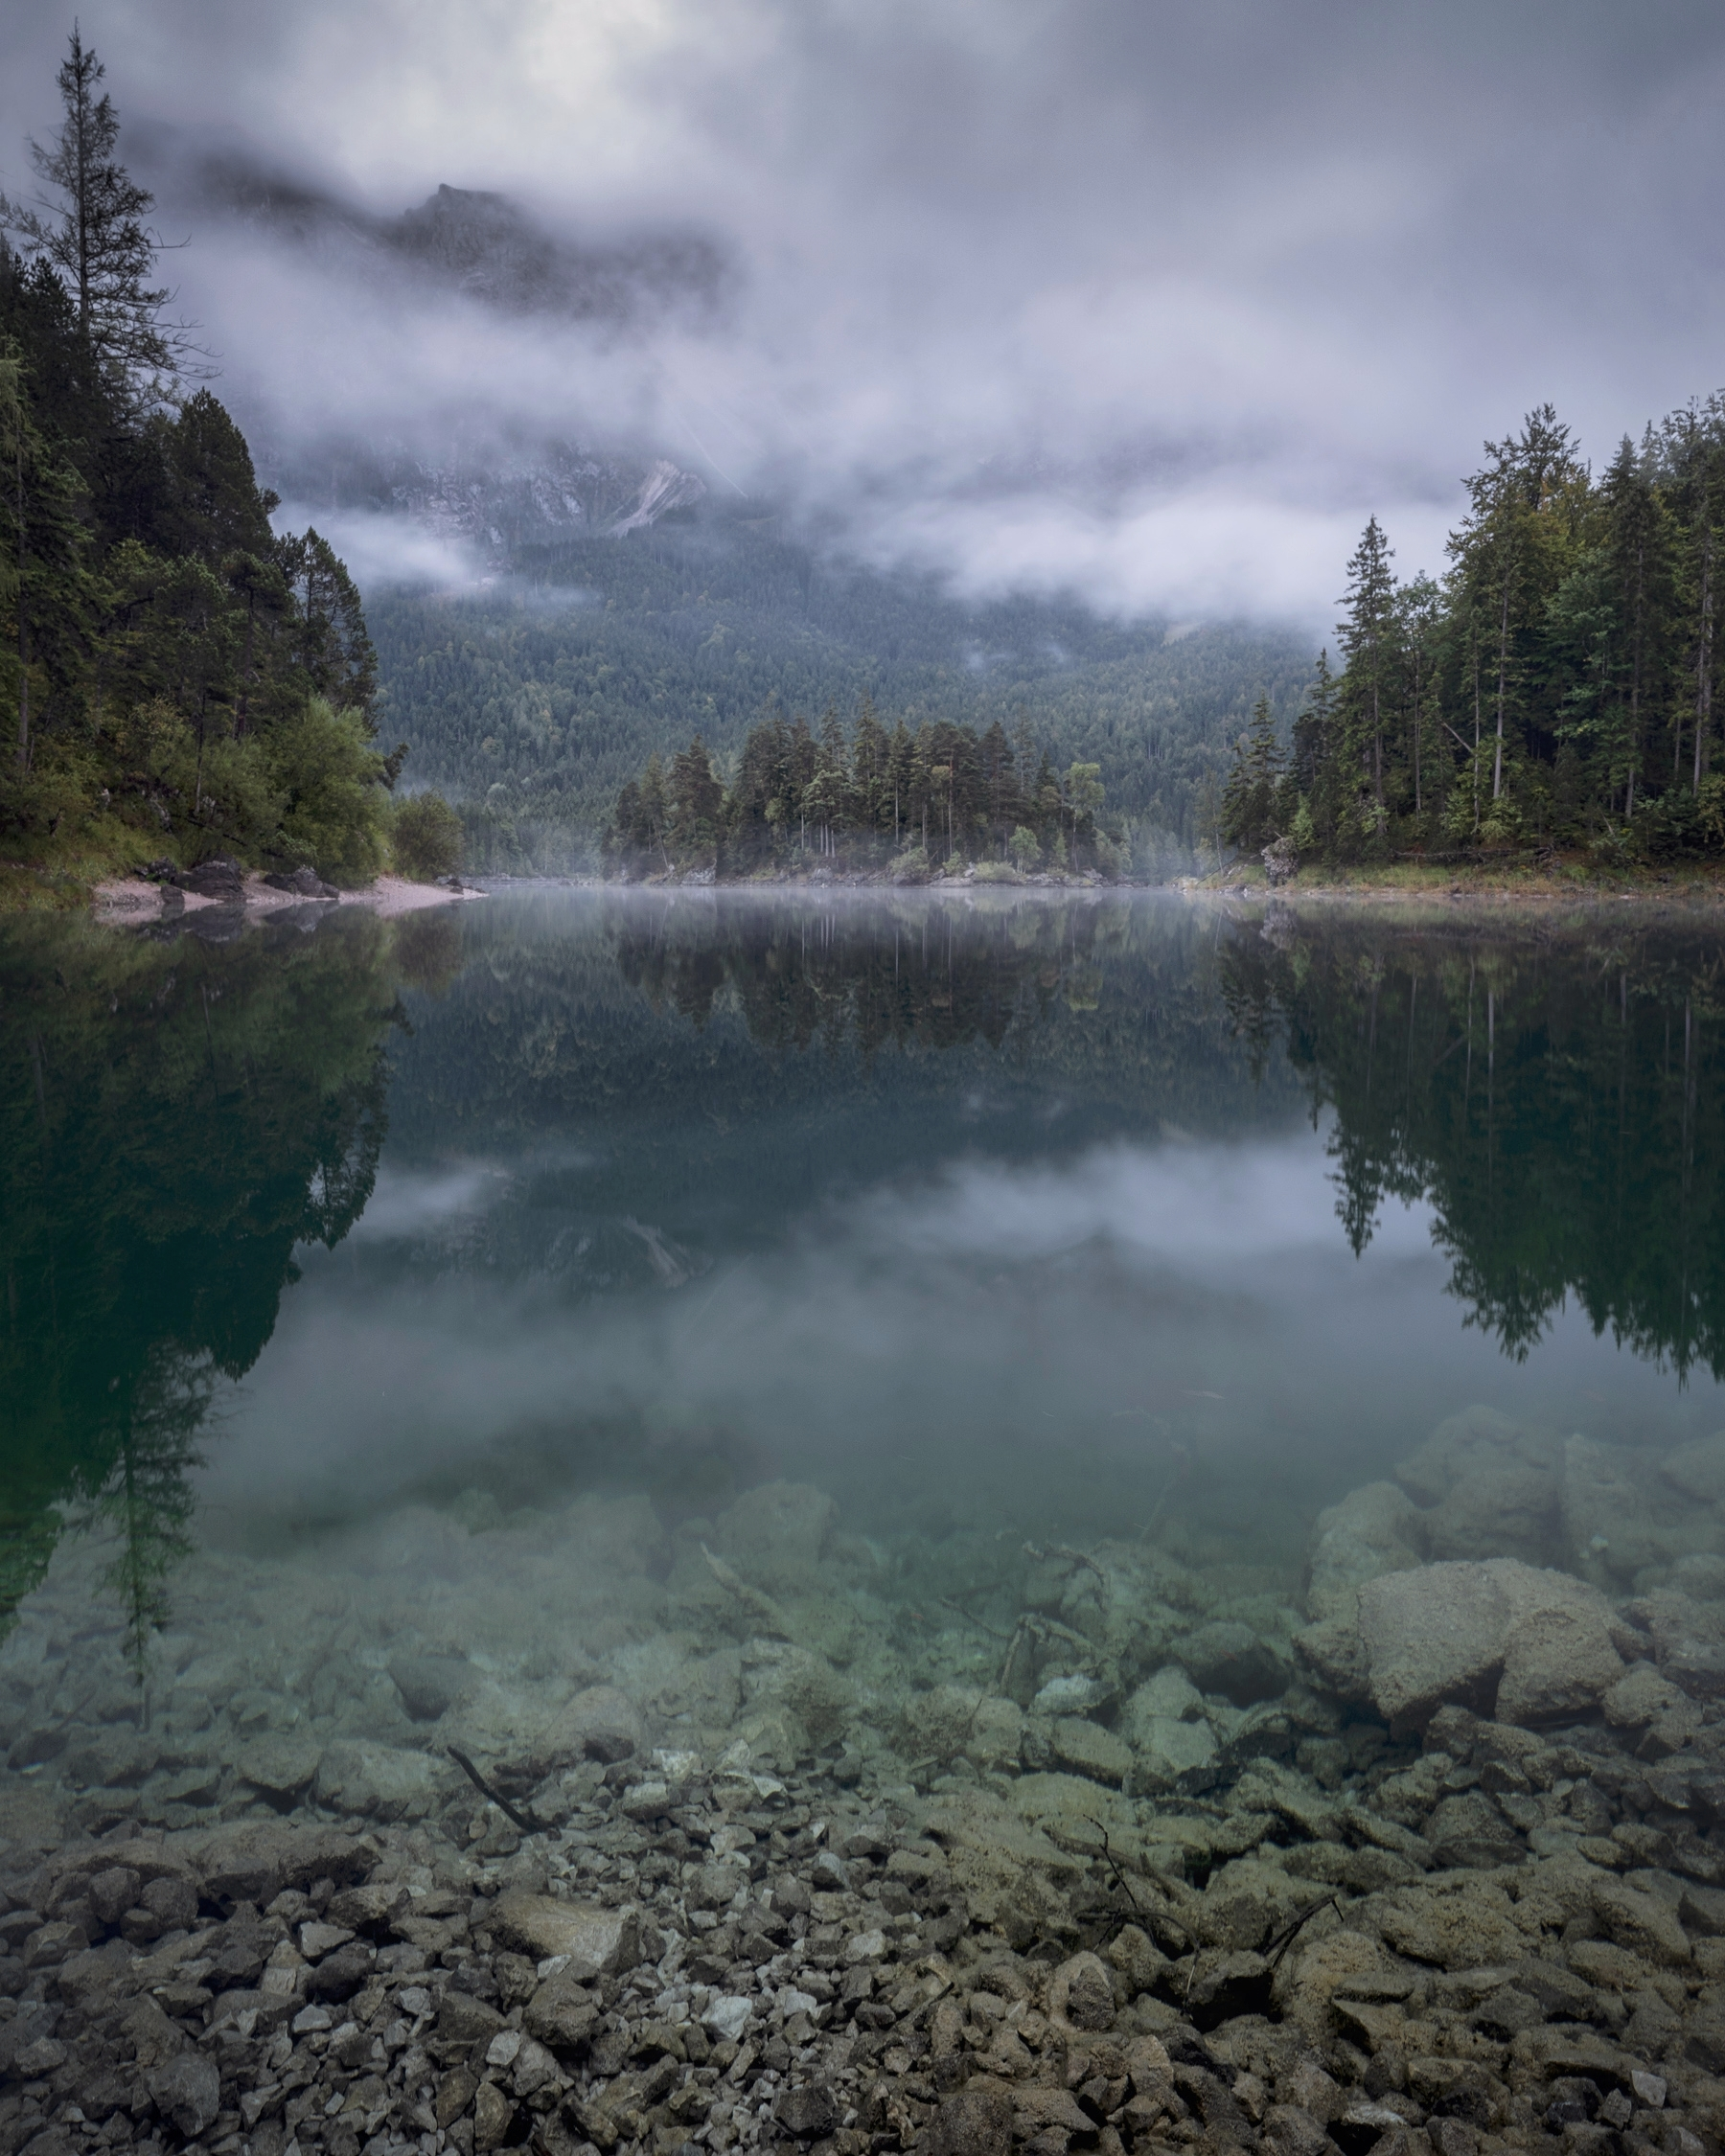 early morning at Eibsee, Germany. The  NanoPro MC CPL (Circular Polariser)  was used to help see through the clear water of the beautiful lake. The tripod was placed into the water of the lake. The pol filter did a good job revealing a clear view through the water.